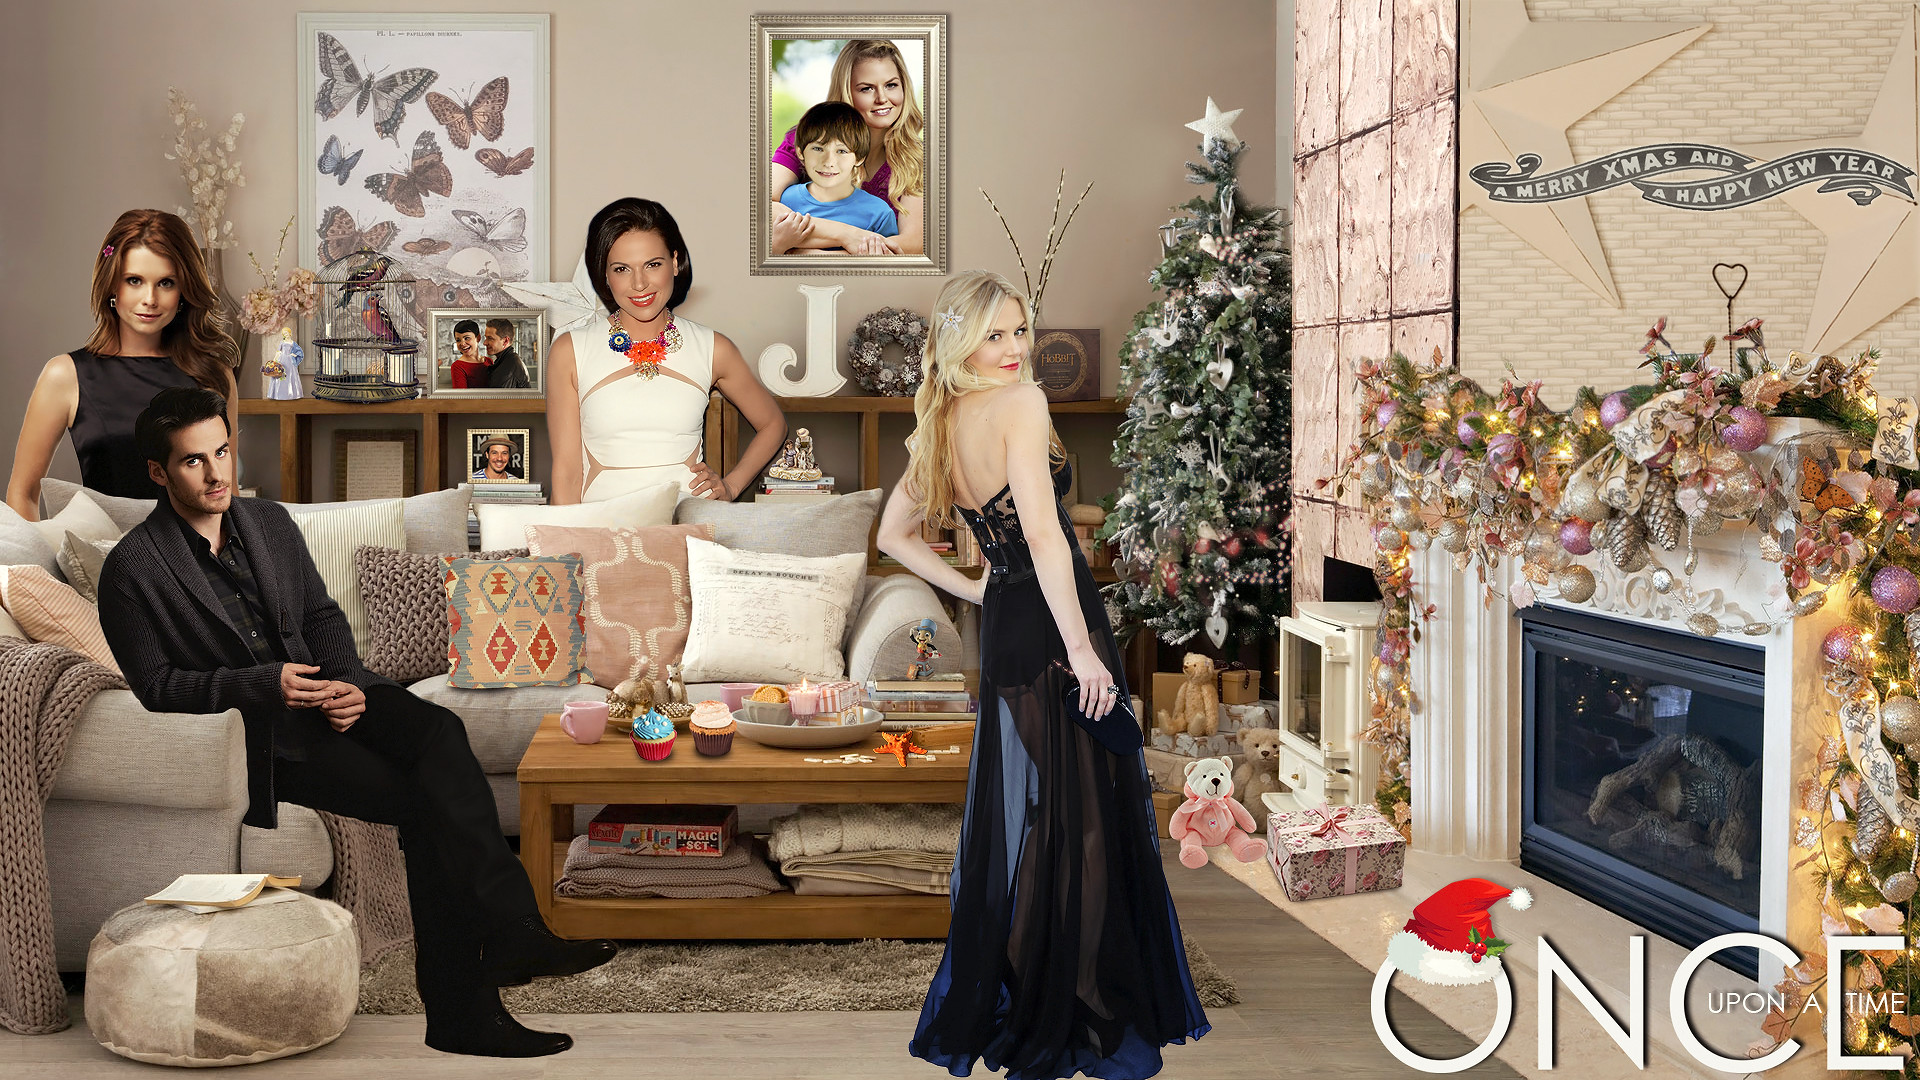 … Once upon a time christmas by GladnessGalvin